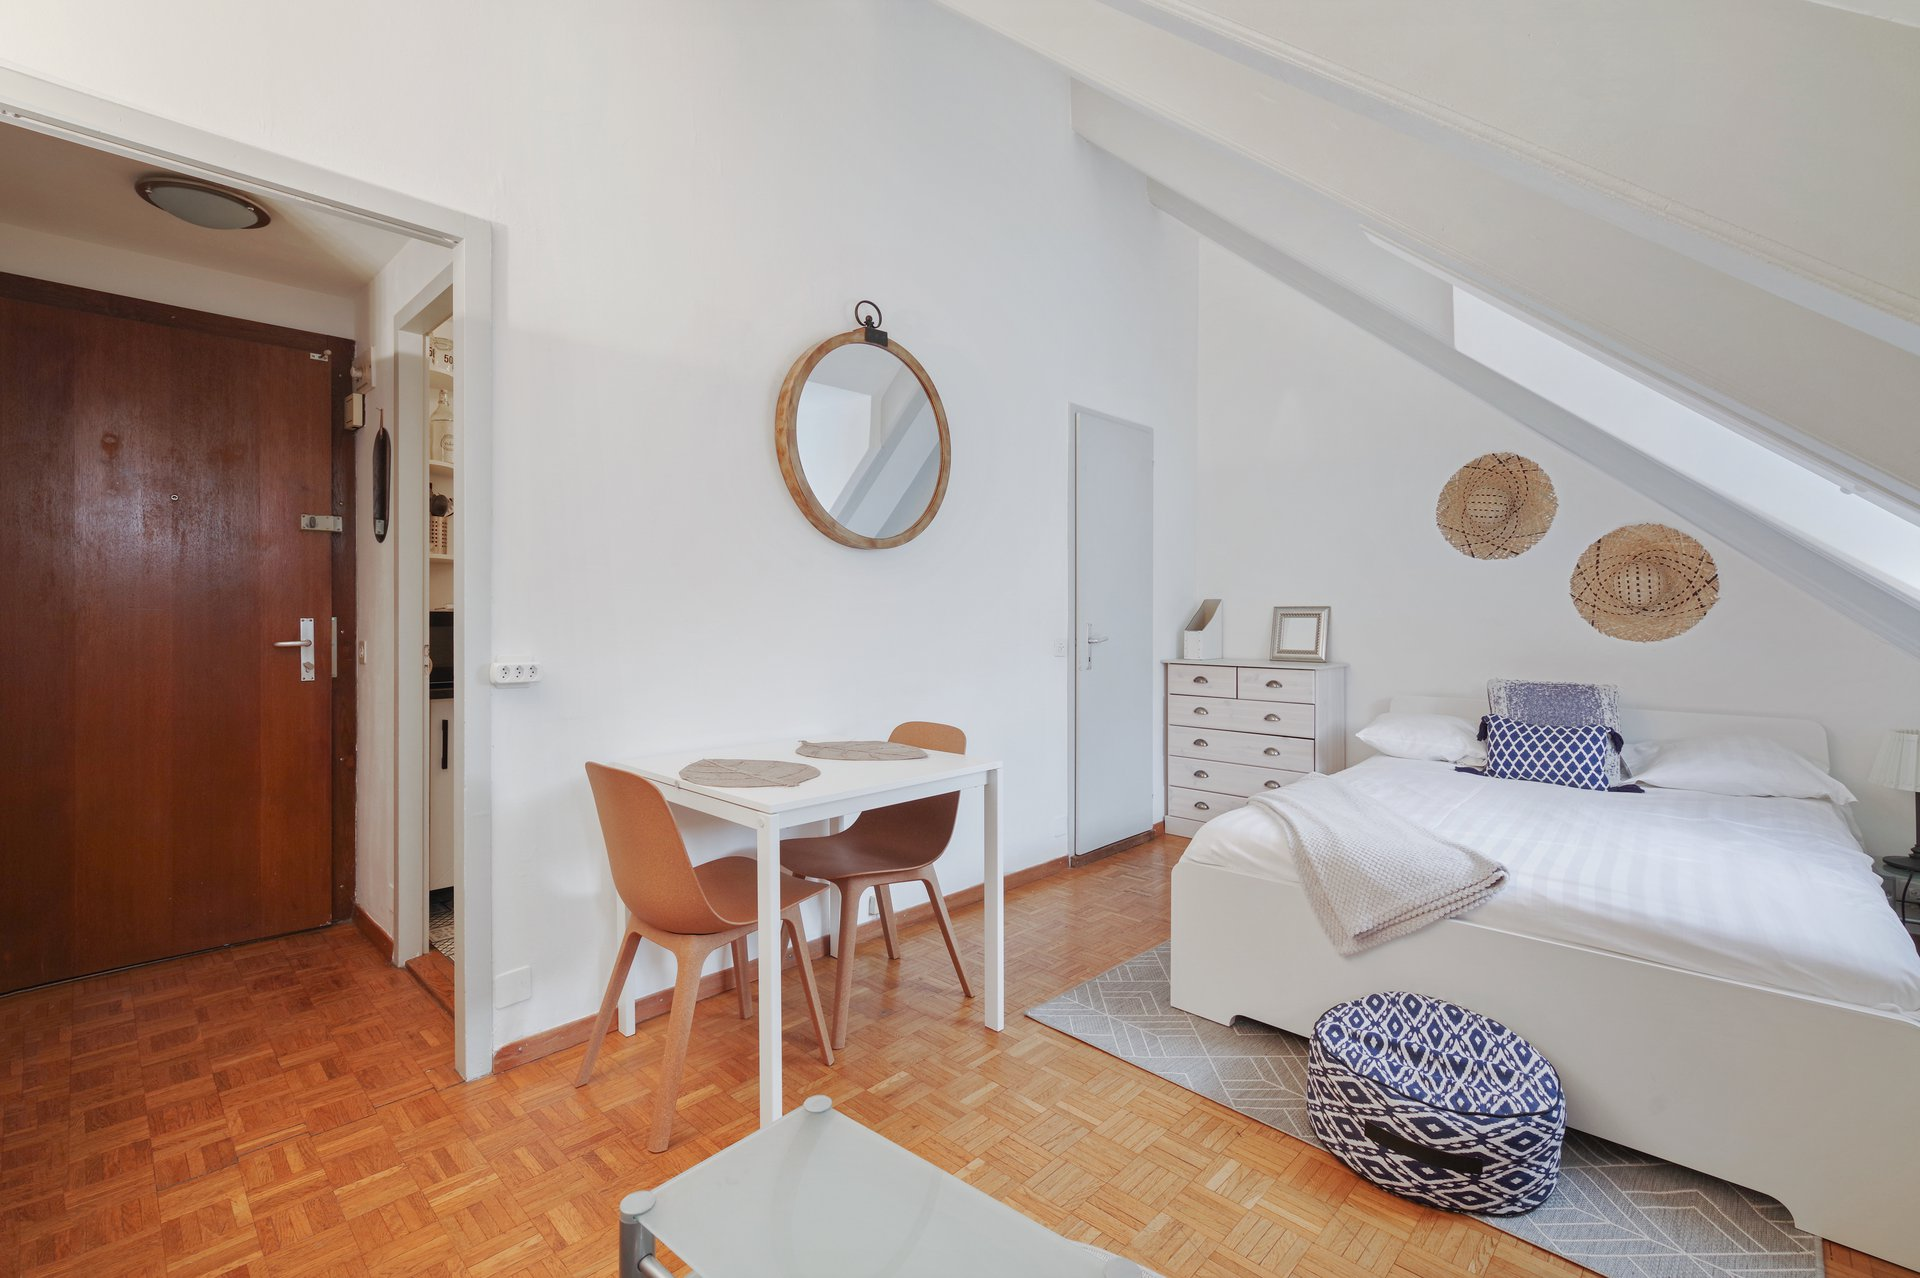 With exposed charming wooden beams, you will feel like in a cocoon. Really functional apartment, with a well-equipped kitchen